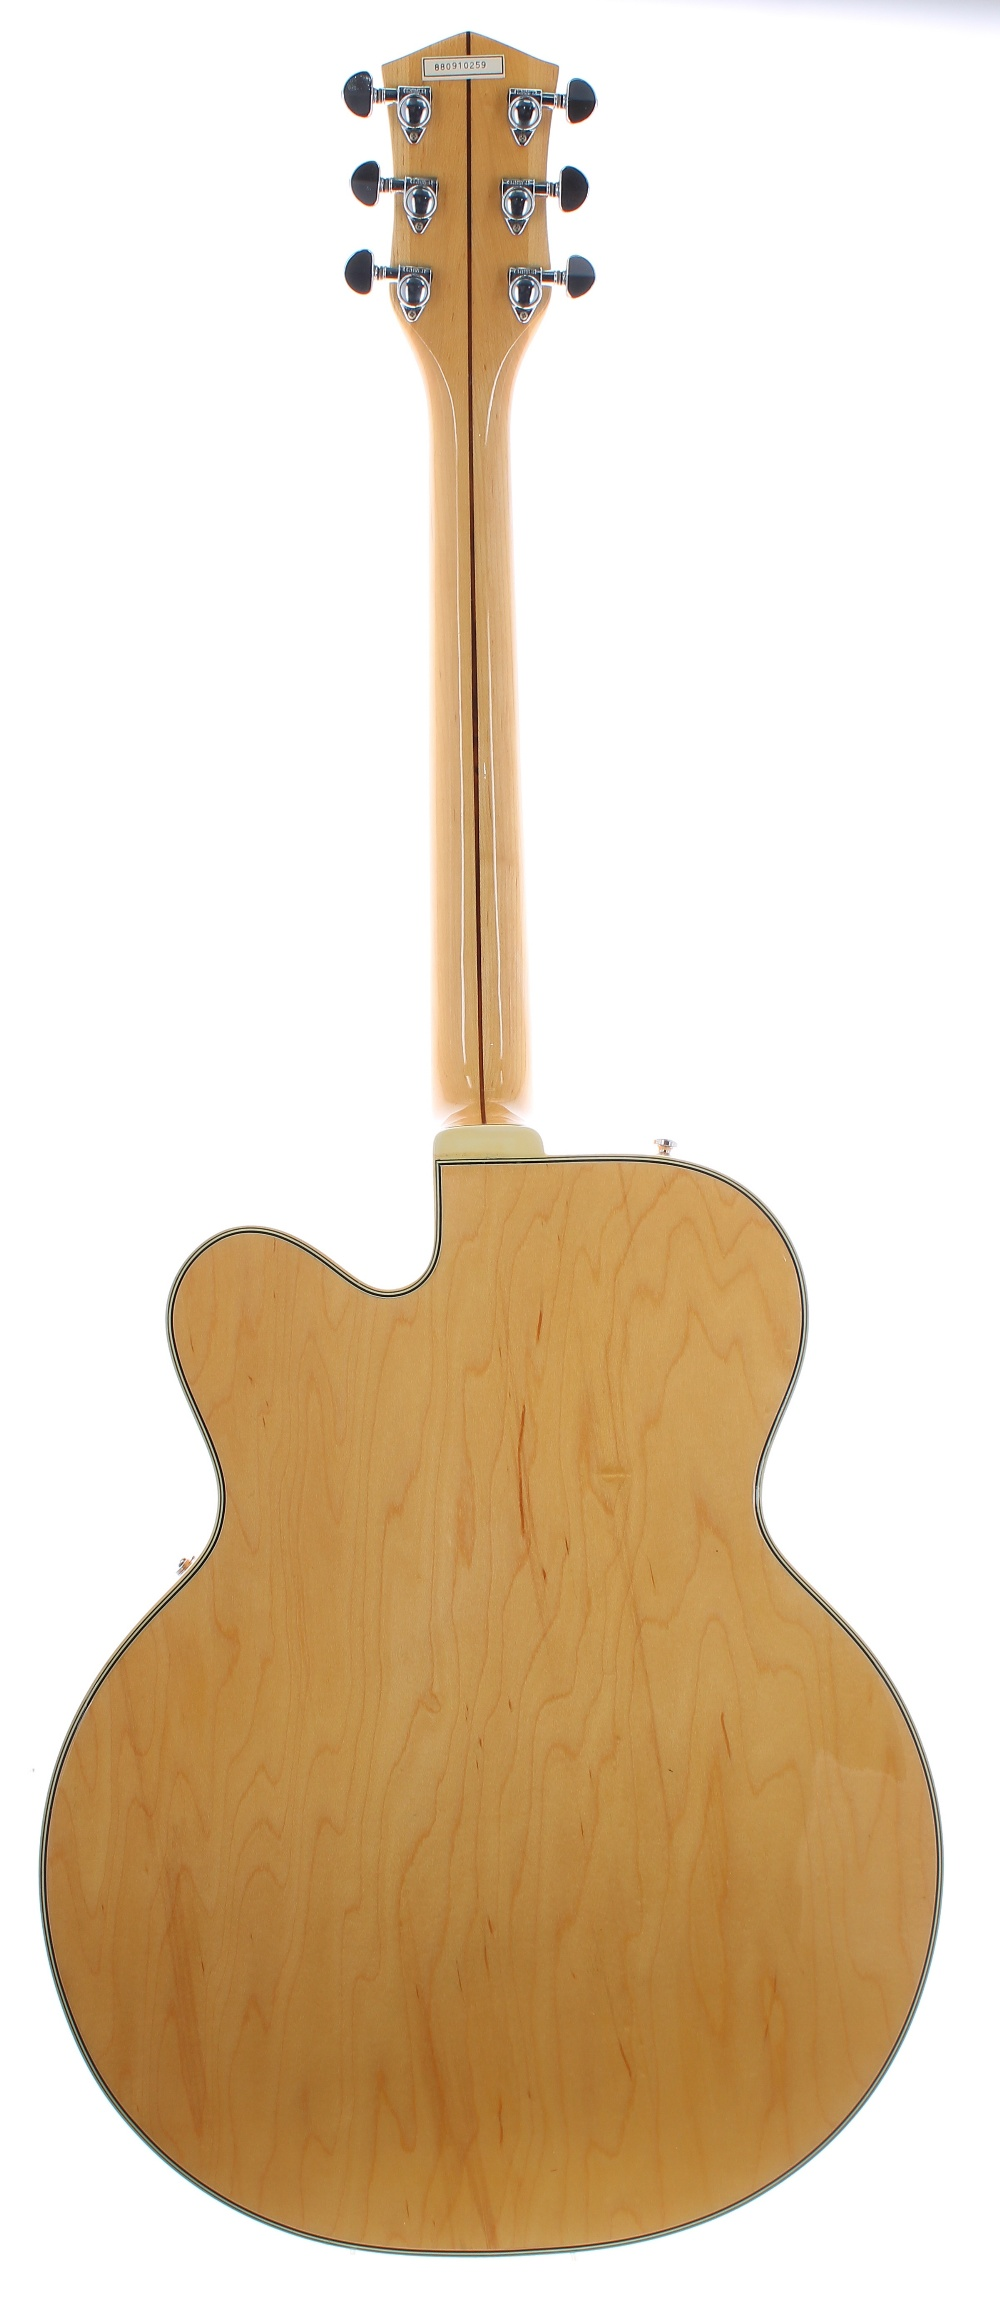 1980s Hondo HL5FBB Fat Boy hollow body electric guitar, ser. no. 88xxxxx9; Finish: natural; - Image 2 of 3